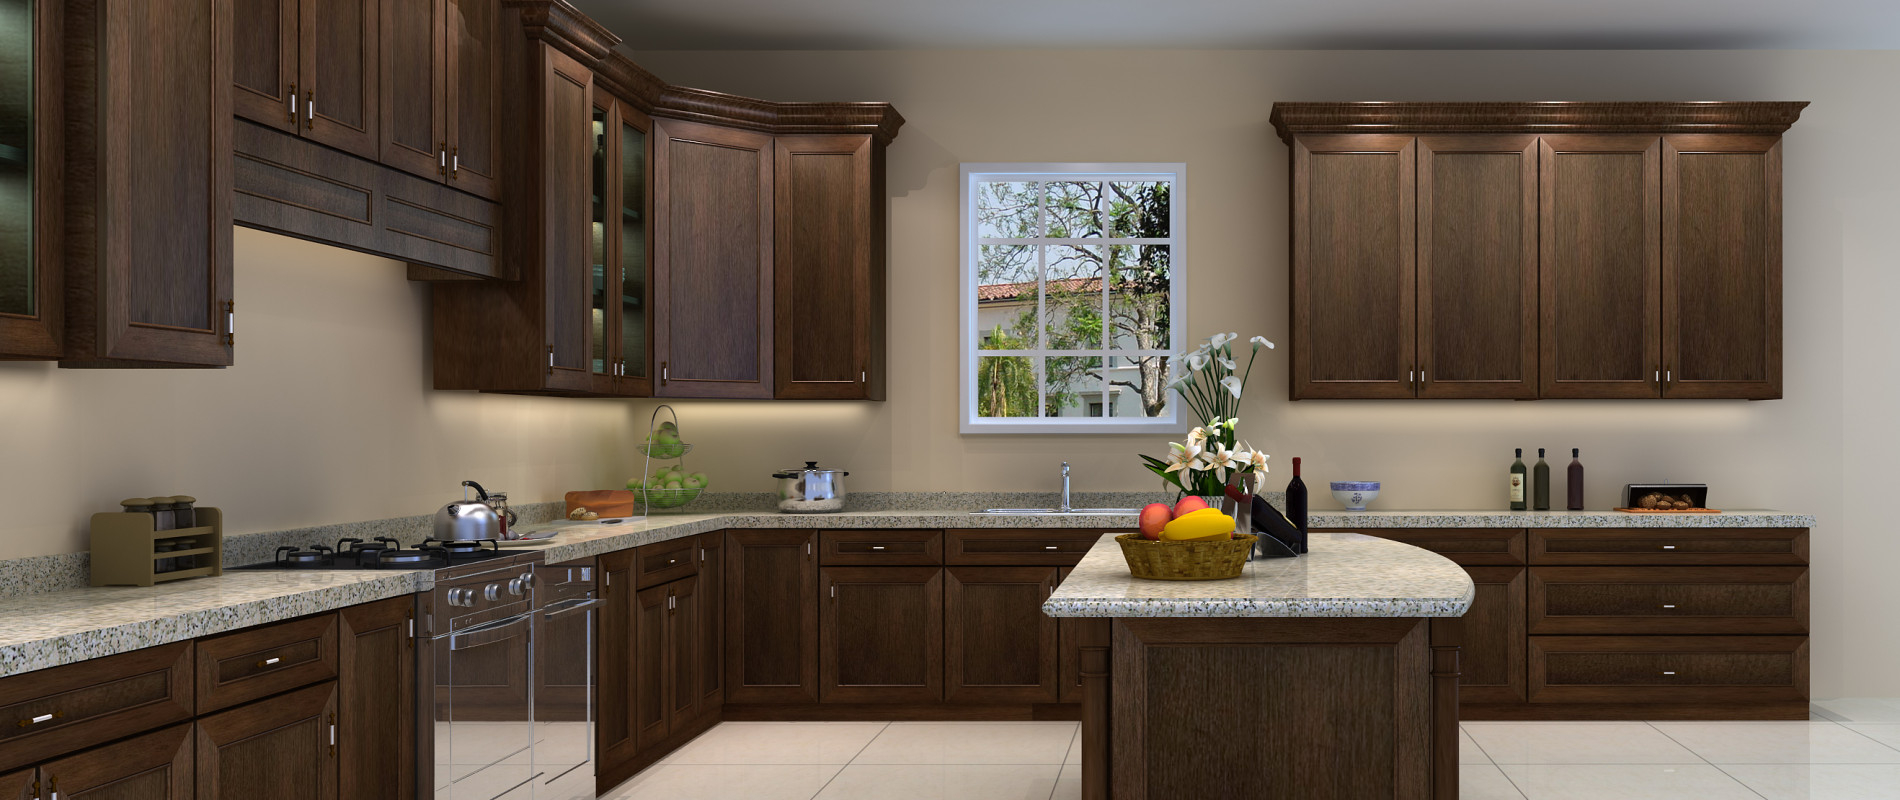 Unfinished Wall Kitchen Images Custom Cabinets Fort Worth Kraftmaid Kitchen